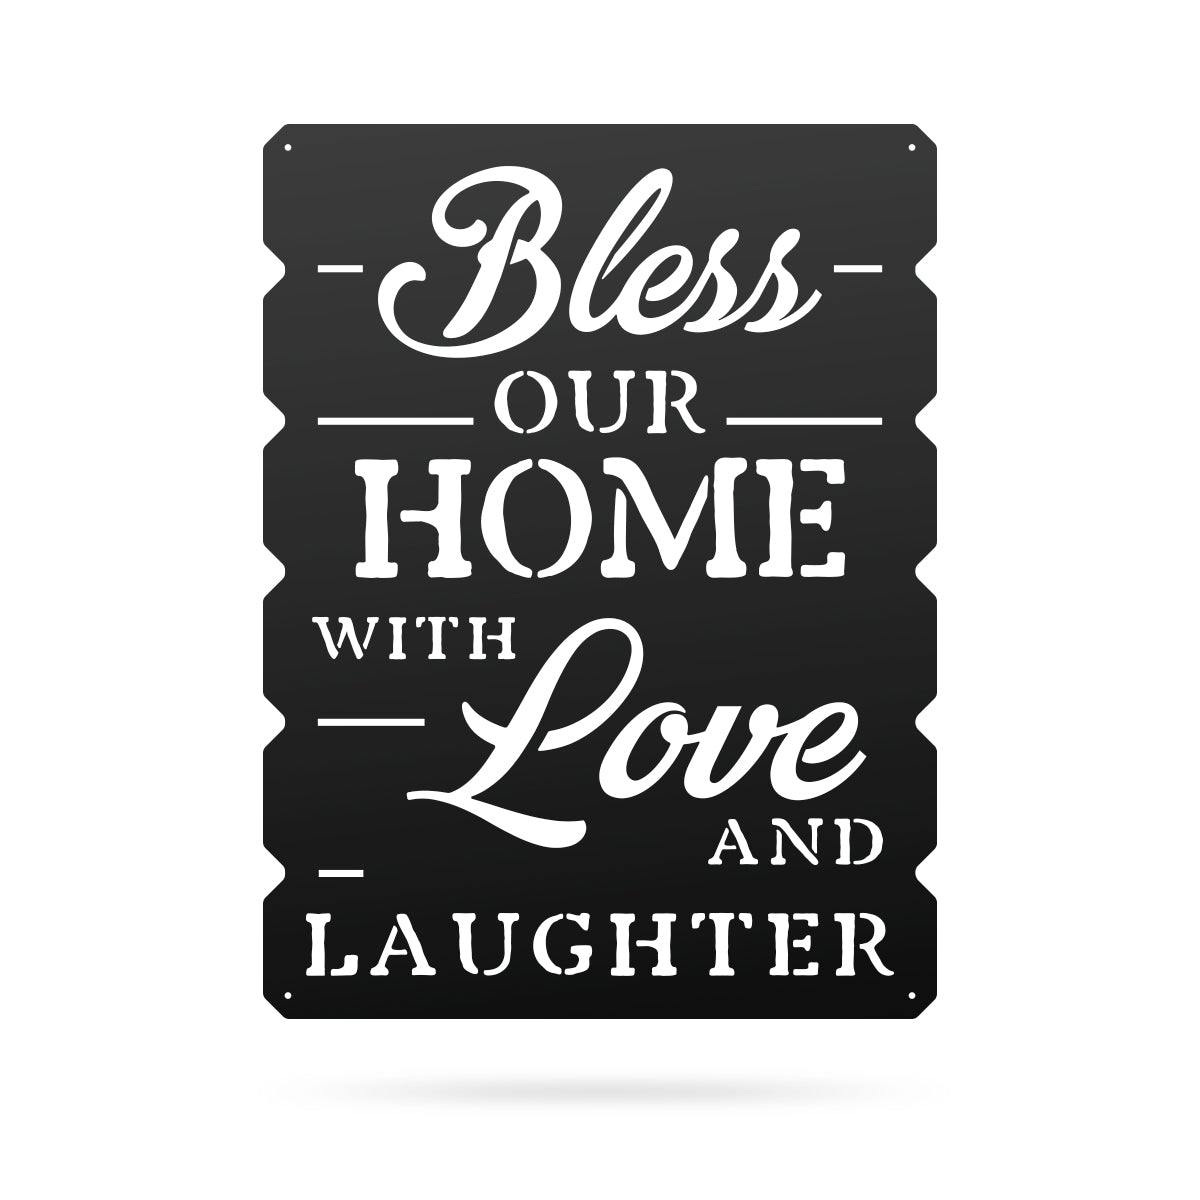 Religious Home Decor Ideas Bless Our Home Wall Art Love Laughter Realsteel Center